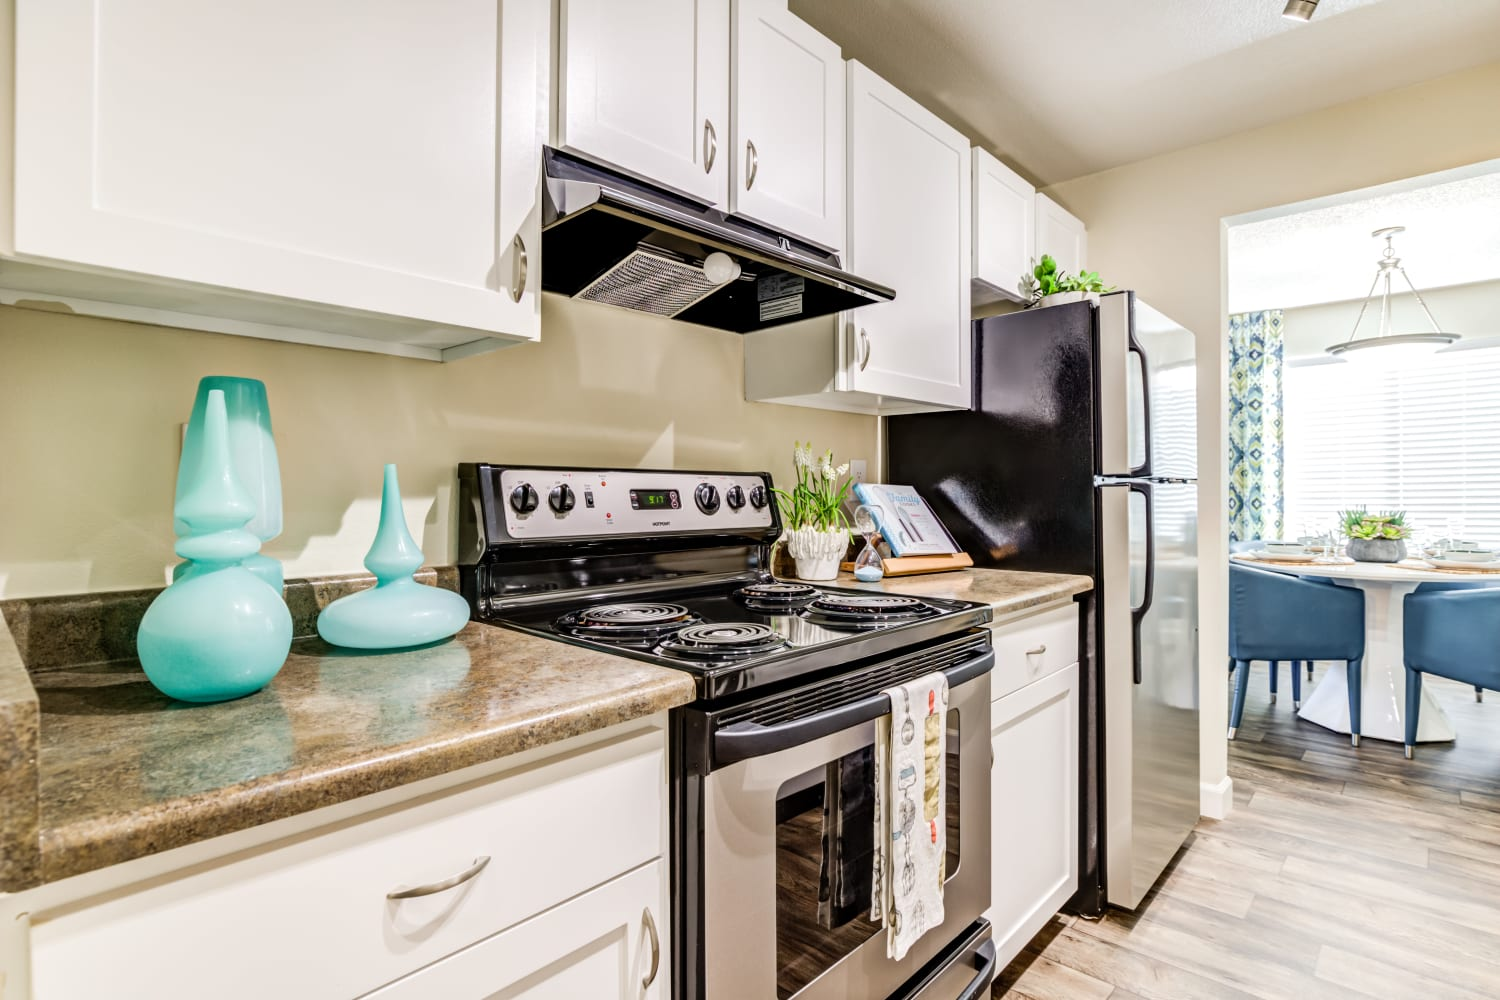 Spacious kitchen with stainless steel appliances at Edgewood Park Apartments in Bellevue, Washington